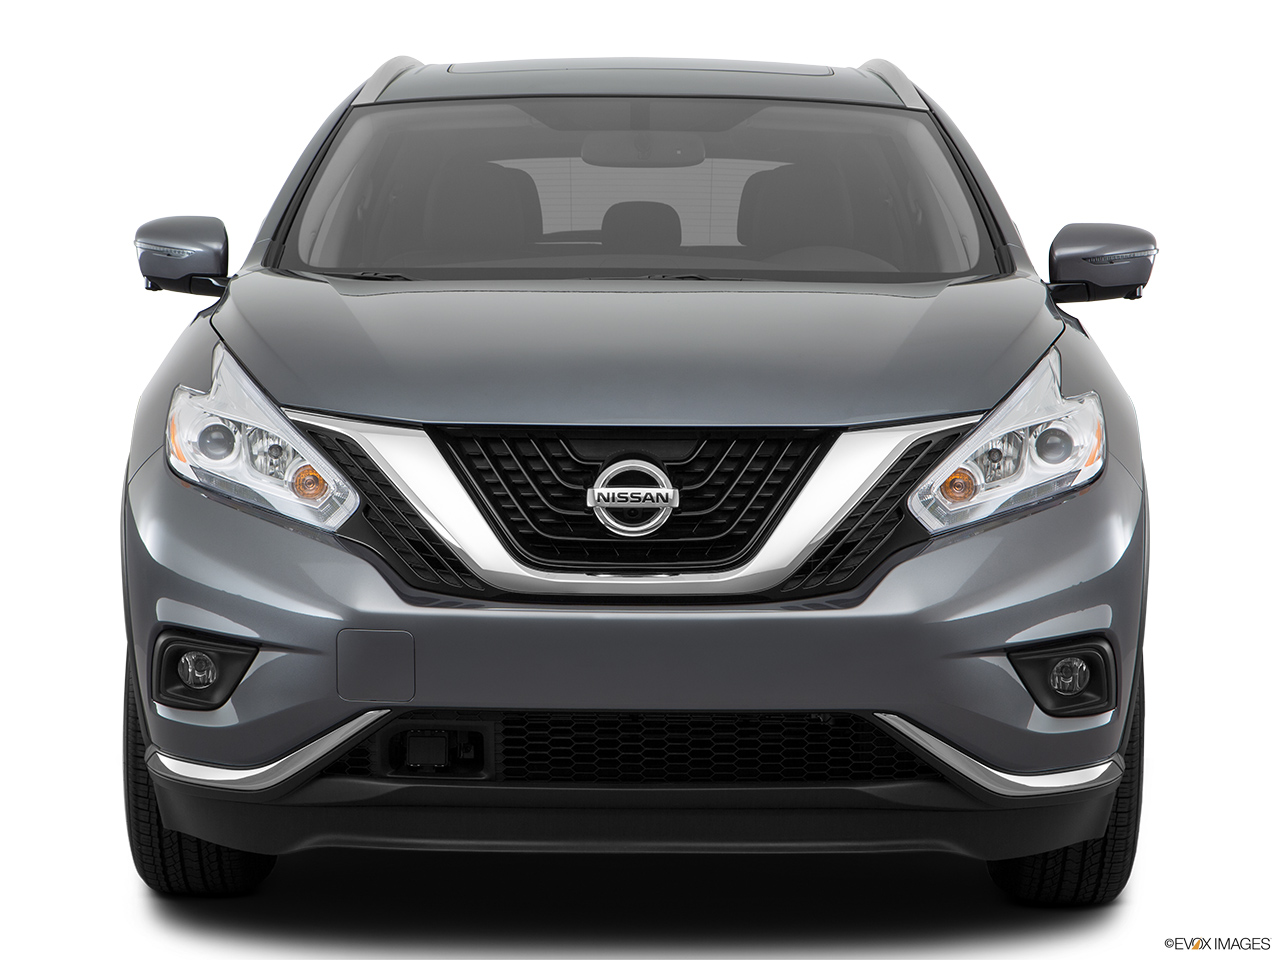 Nissan Murano Seating Capacity >> Nissan Murano 2016 3.5L SL in UAE: New Car Prices, Specs, Reviews & Photos | YallaMotor